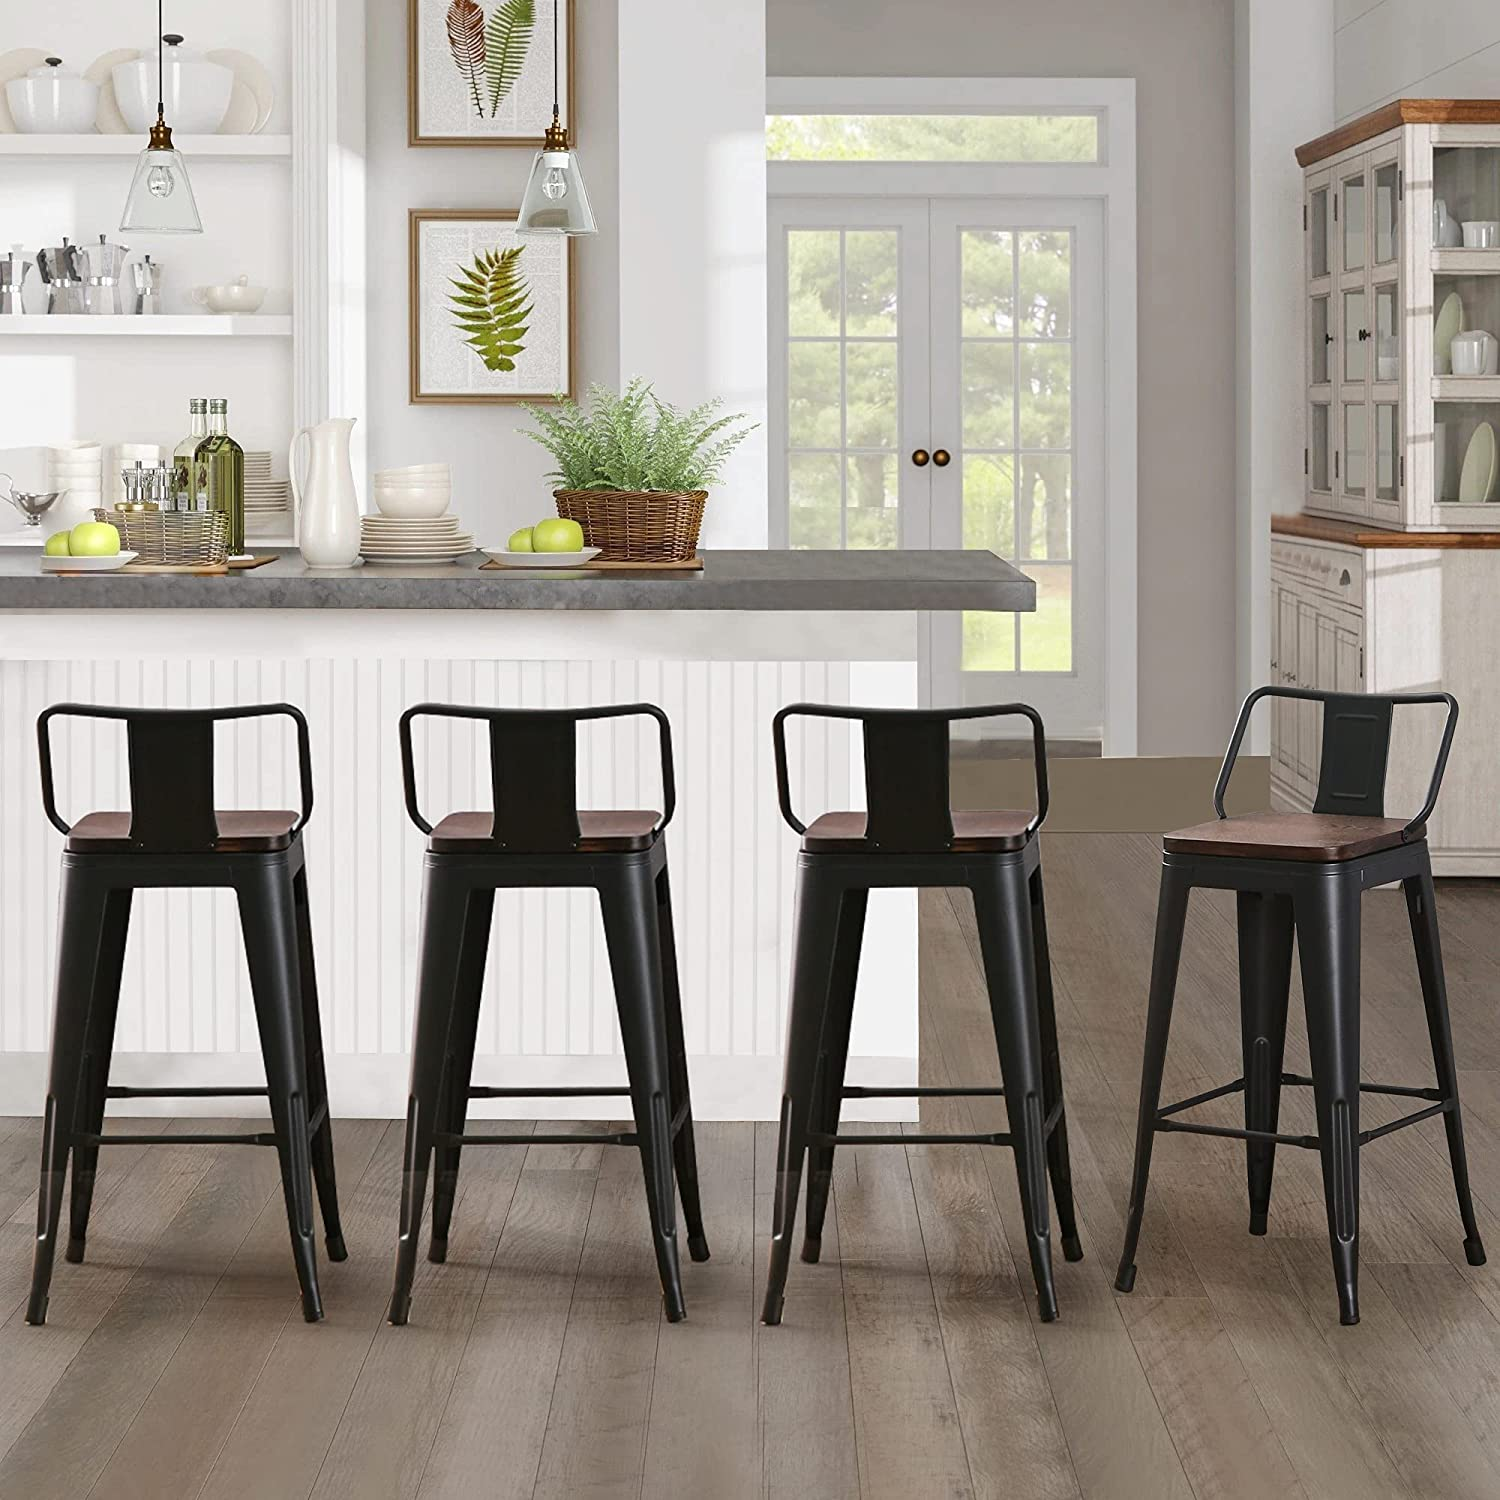 Andeworld Metal Bar Stools Set of 9 Kitchen Counter Stools Bristro  Barstools Industrial Bar Stools 9 Inch, Black with Wooden Seats